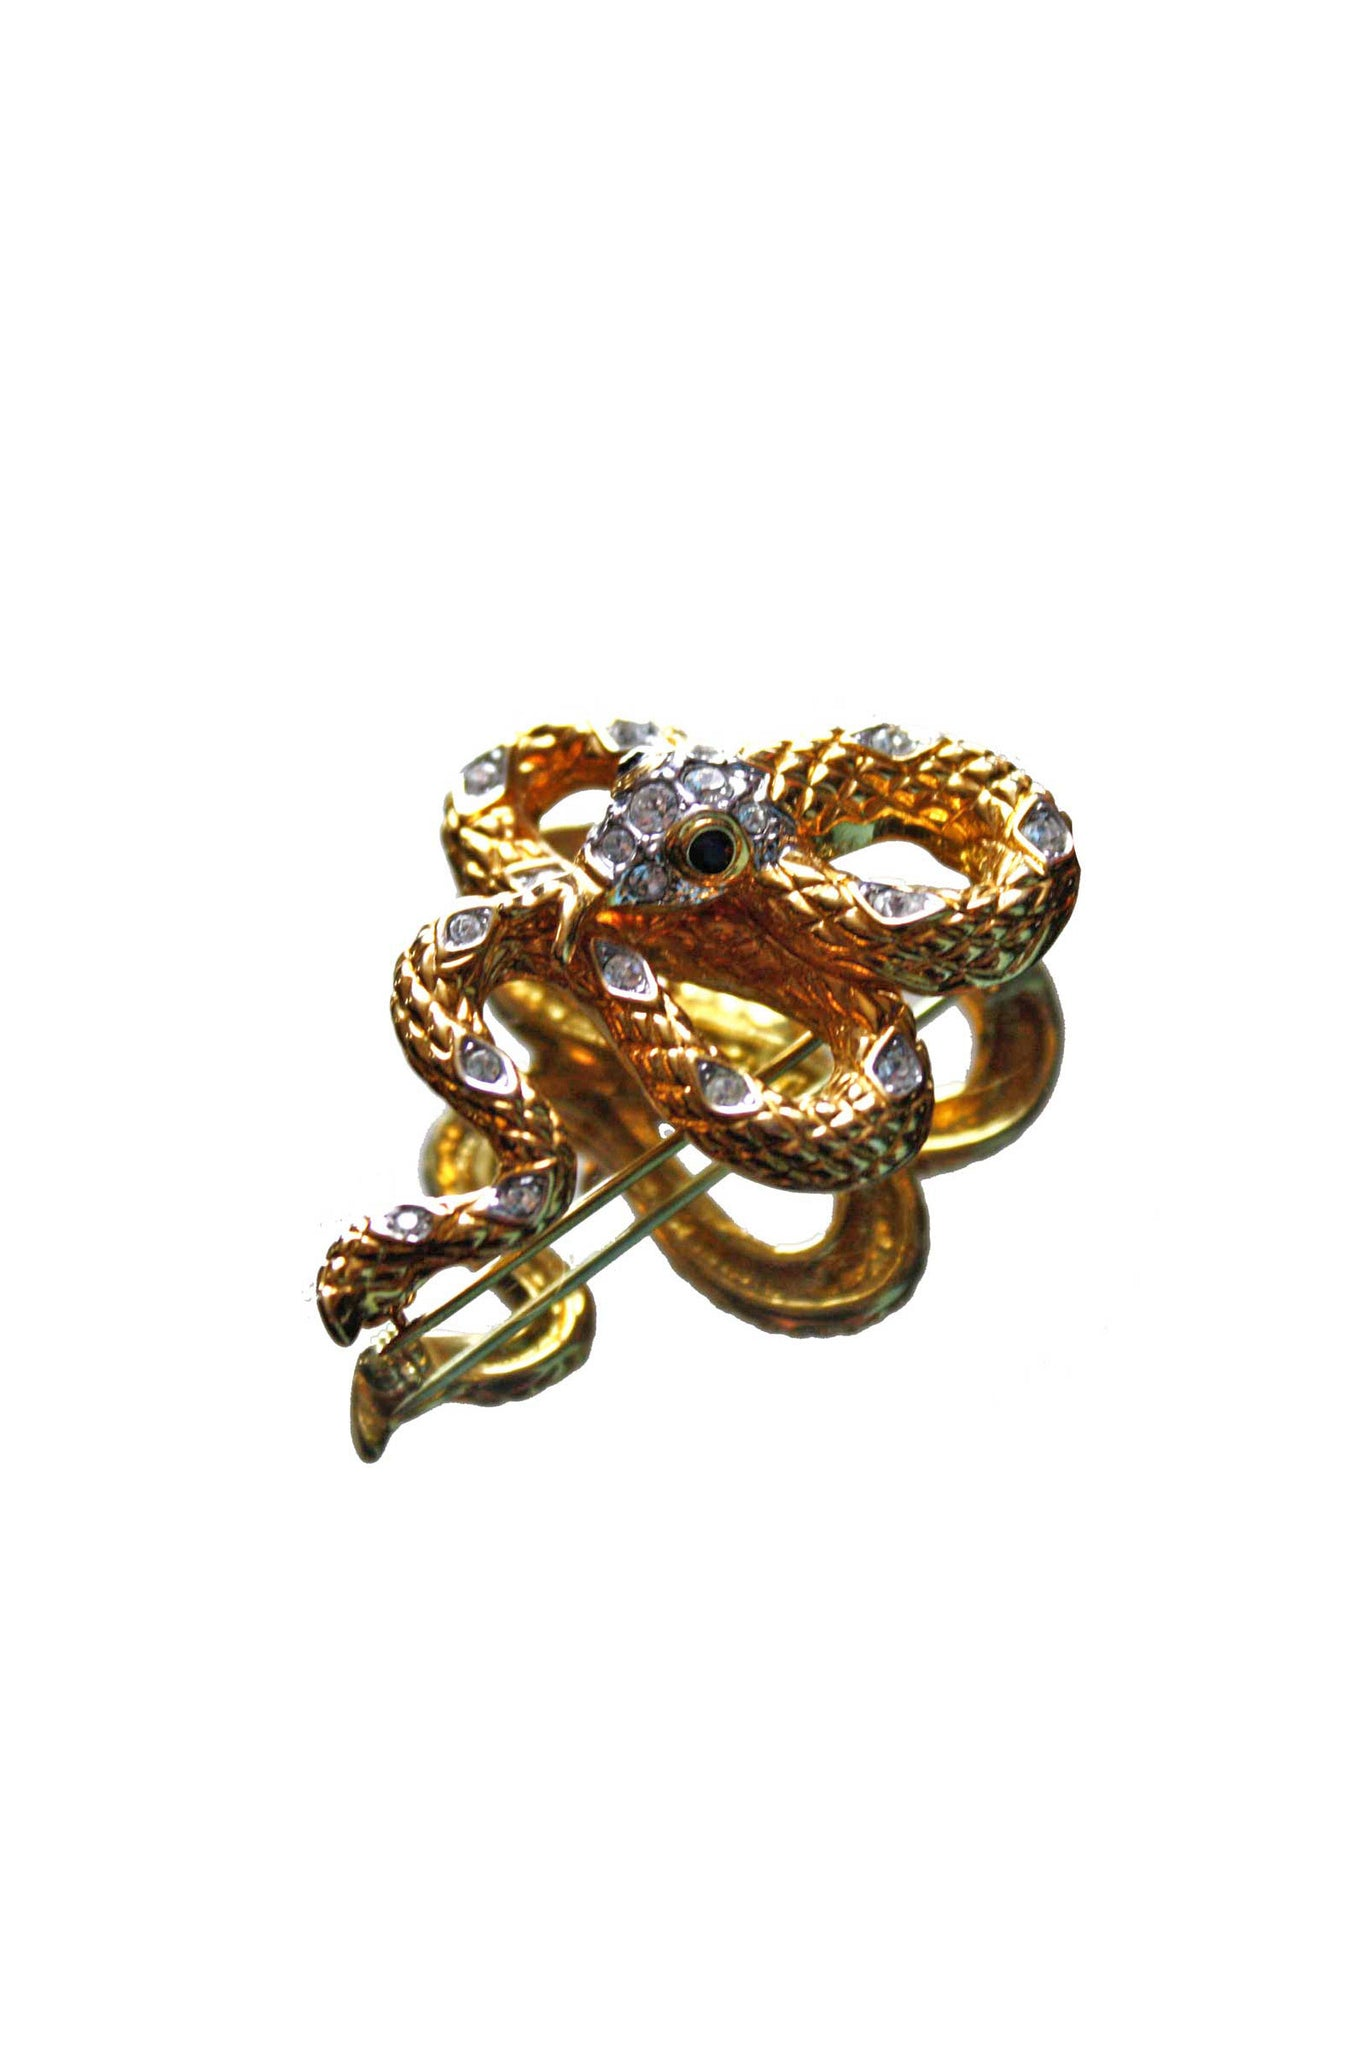 Vintage snake shaped brooch - SoLovesVintage